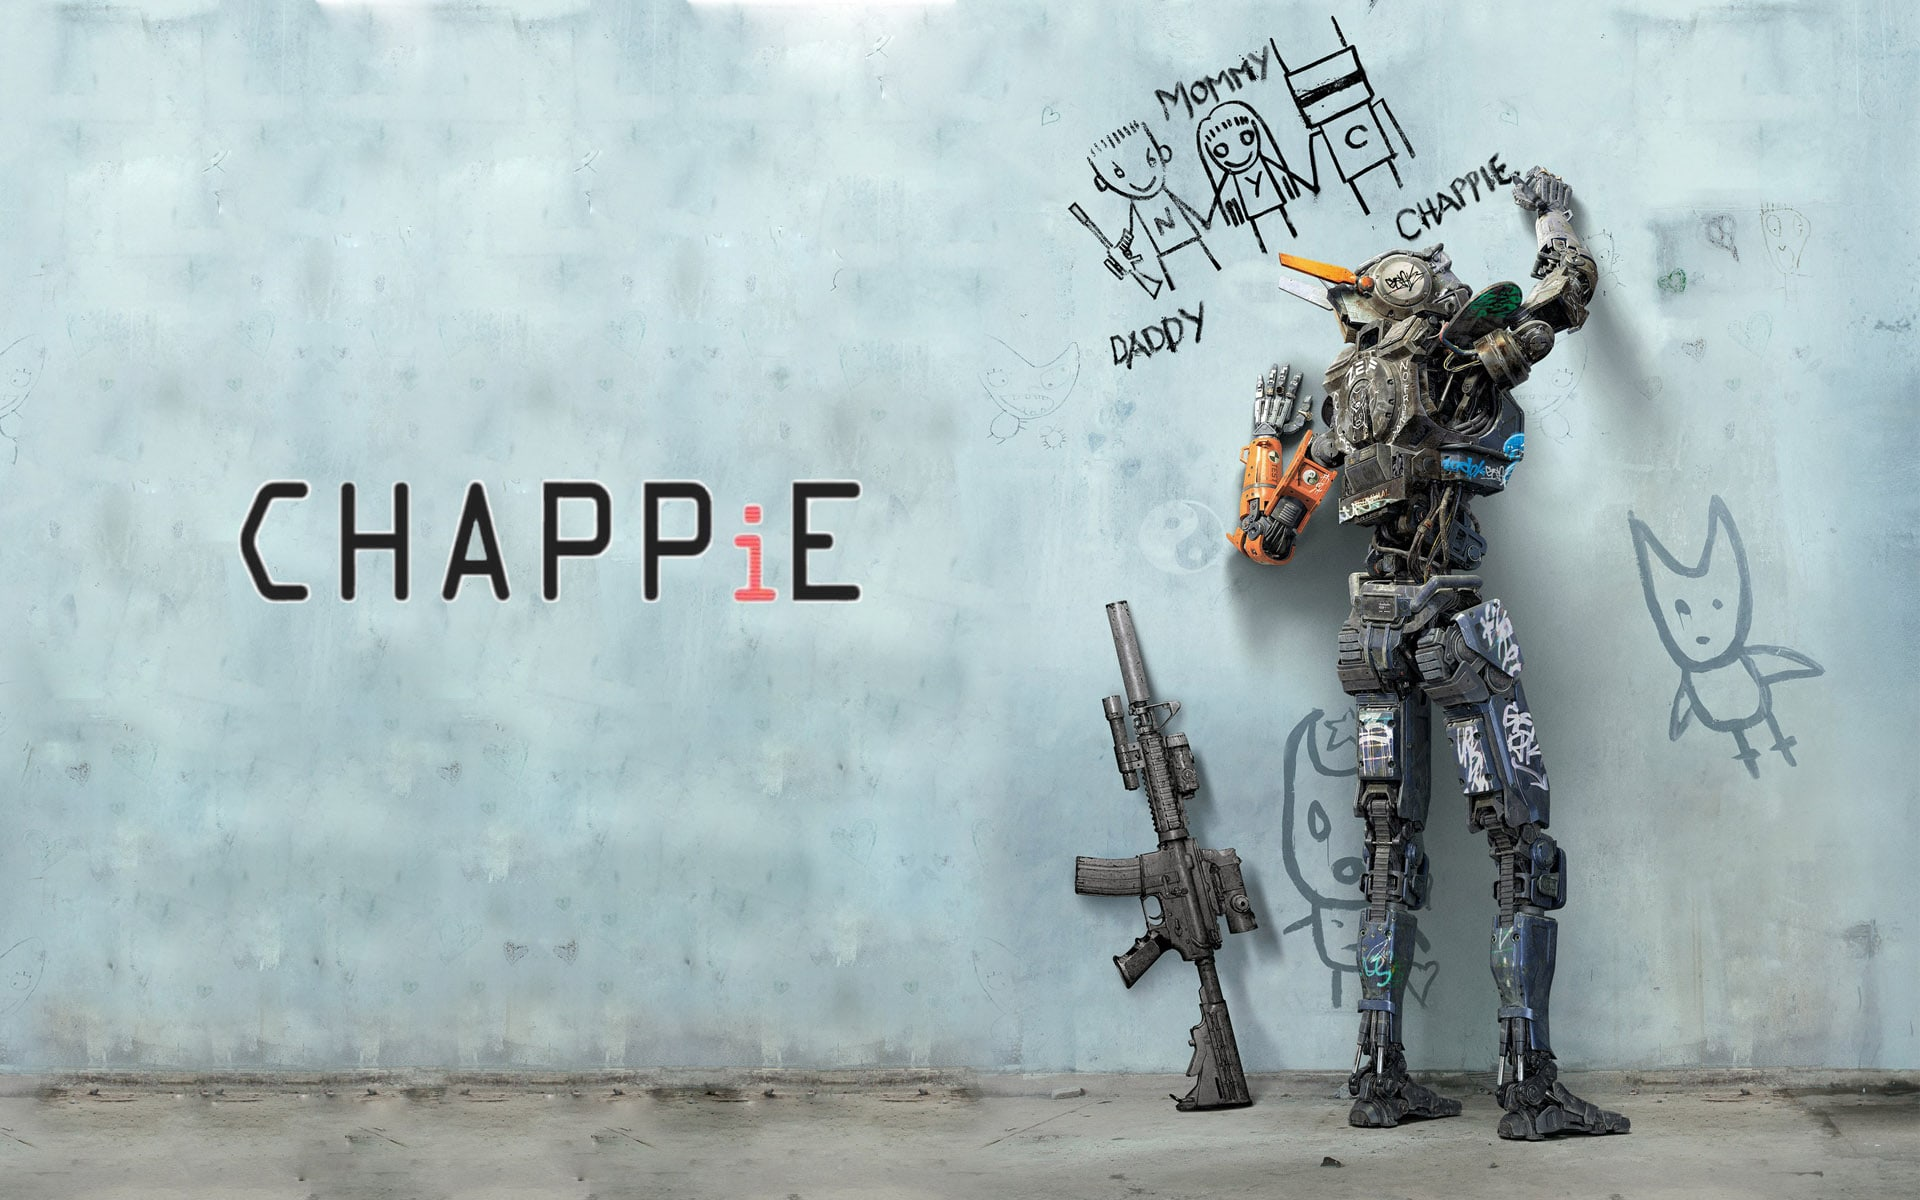 Chappie Wallpapers and Background Images   stmednet 1920x1200